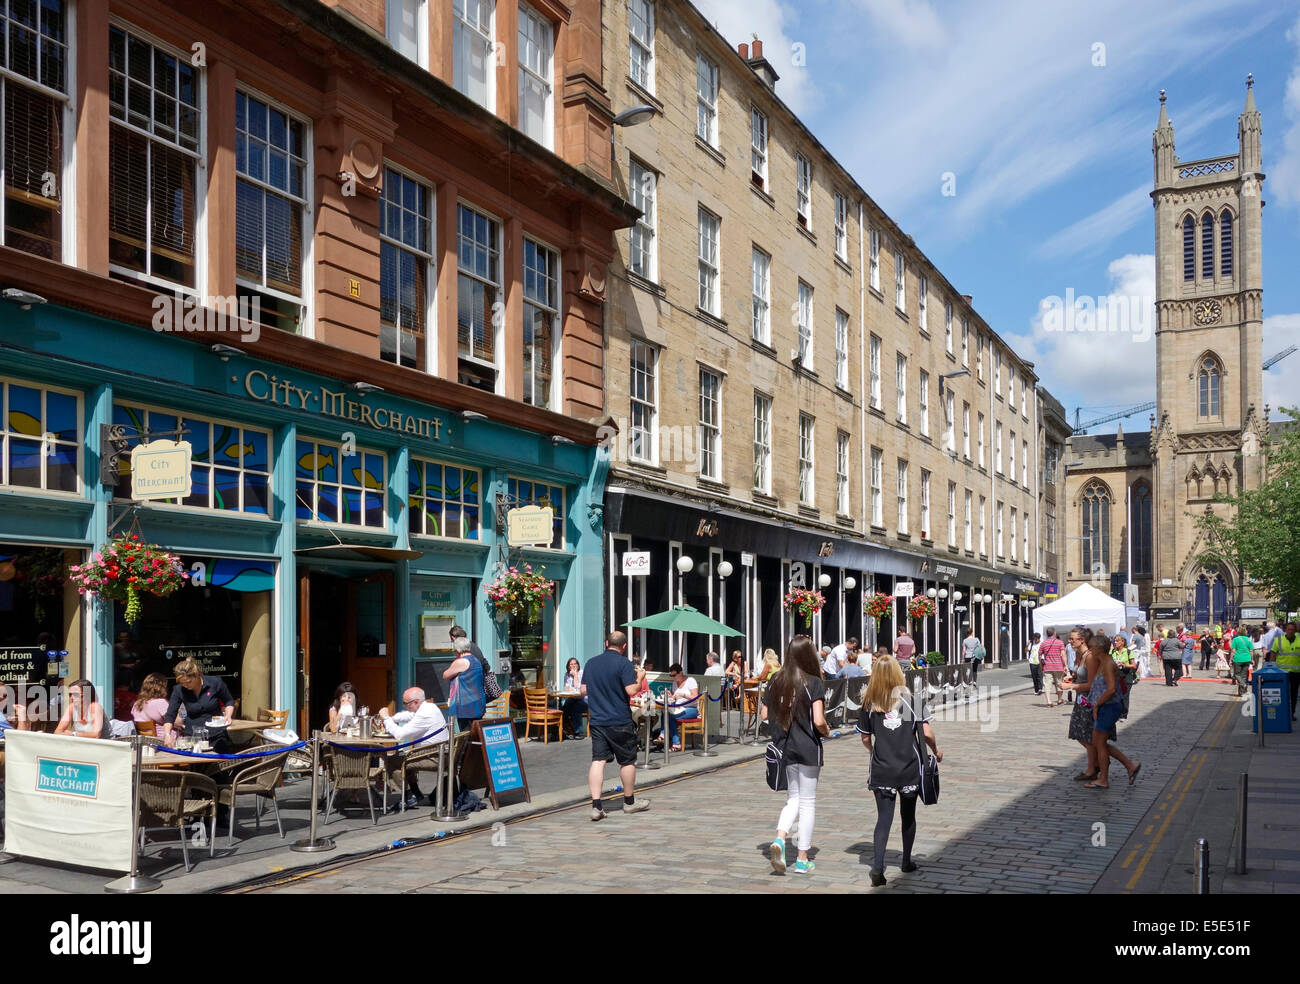 outdoor eating and drinking in Candleriggs during the International market  in the Merchant City Glasgow Scotland - Stock Image